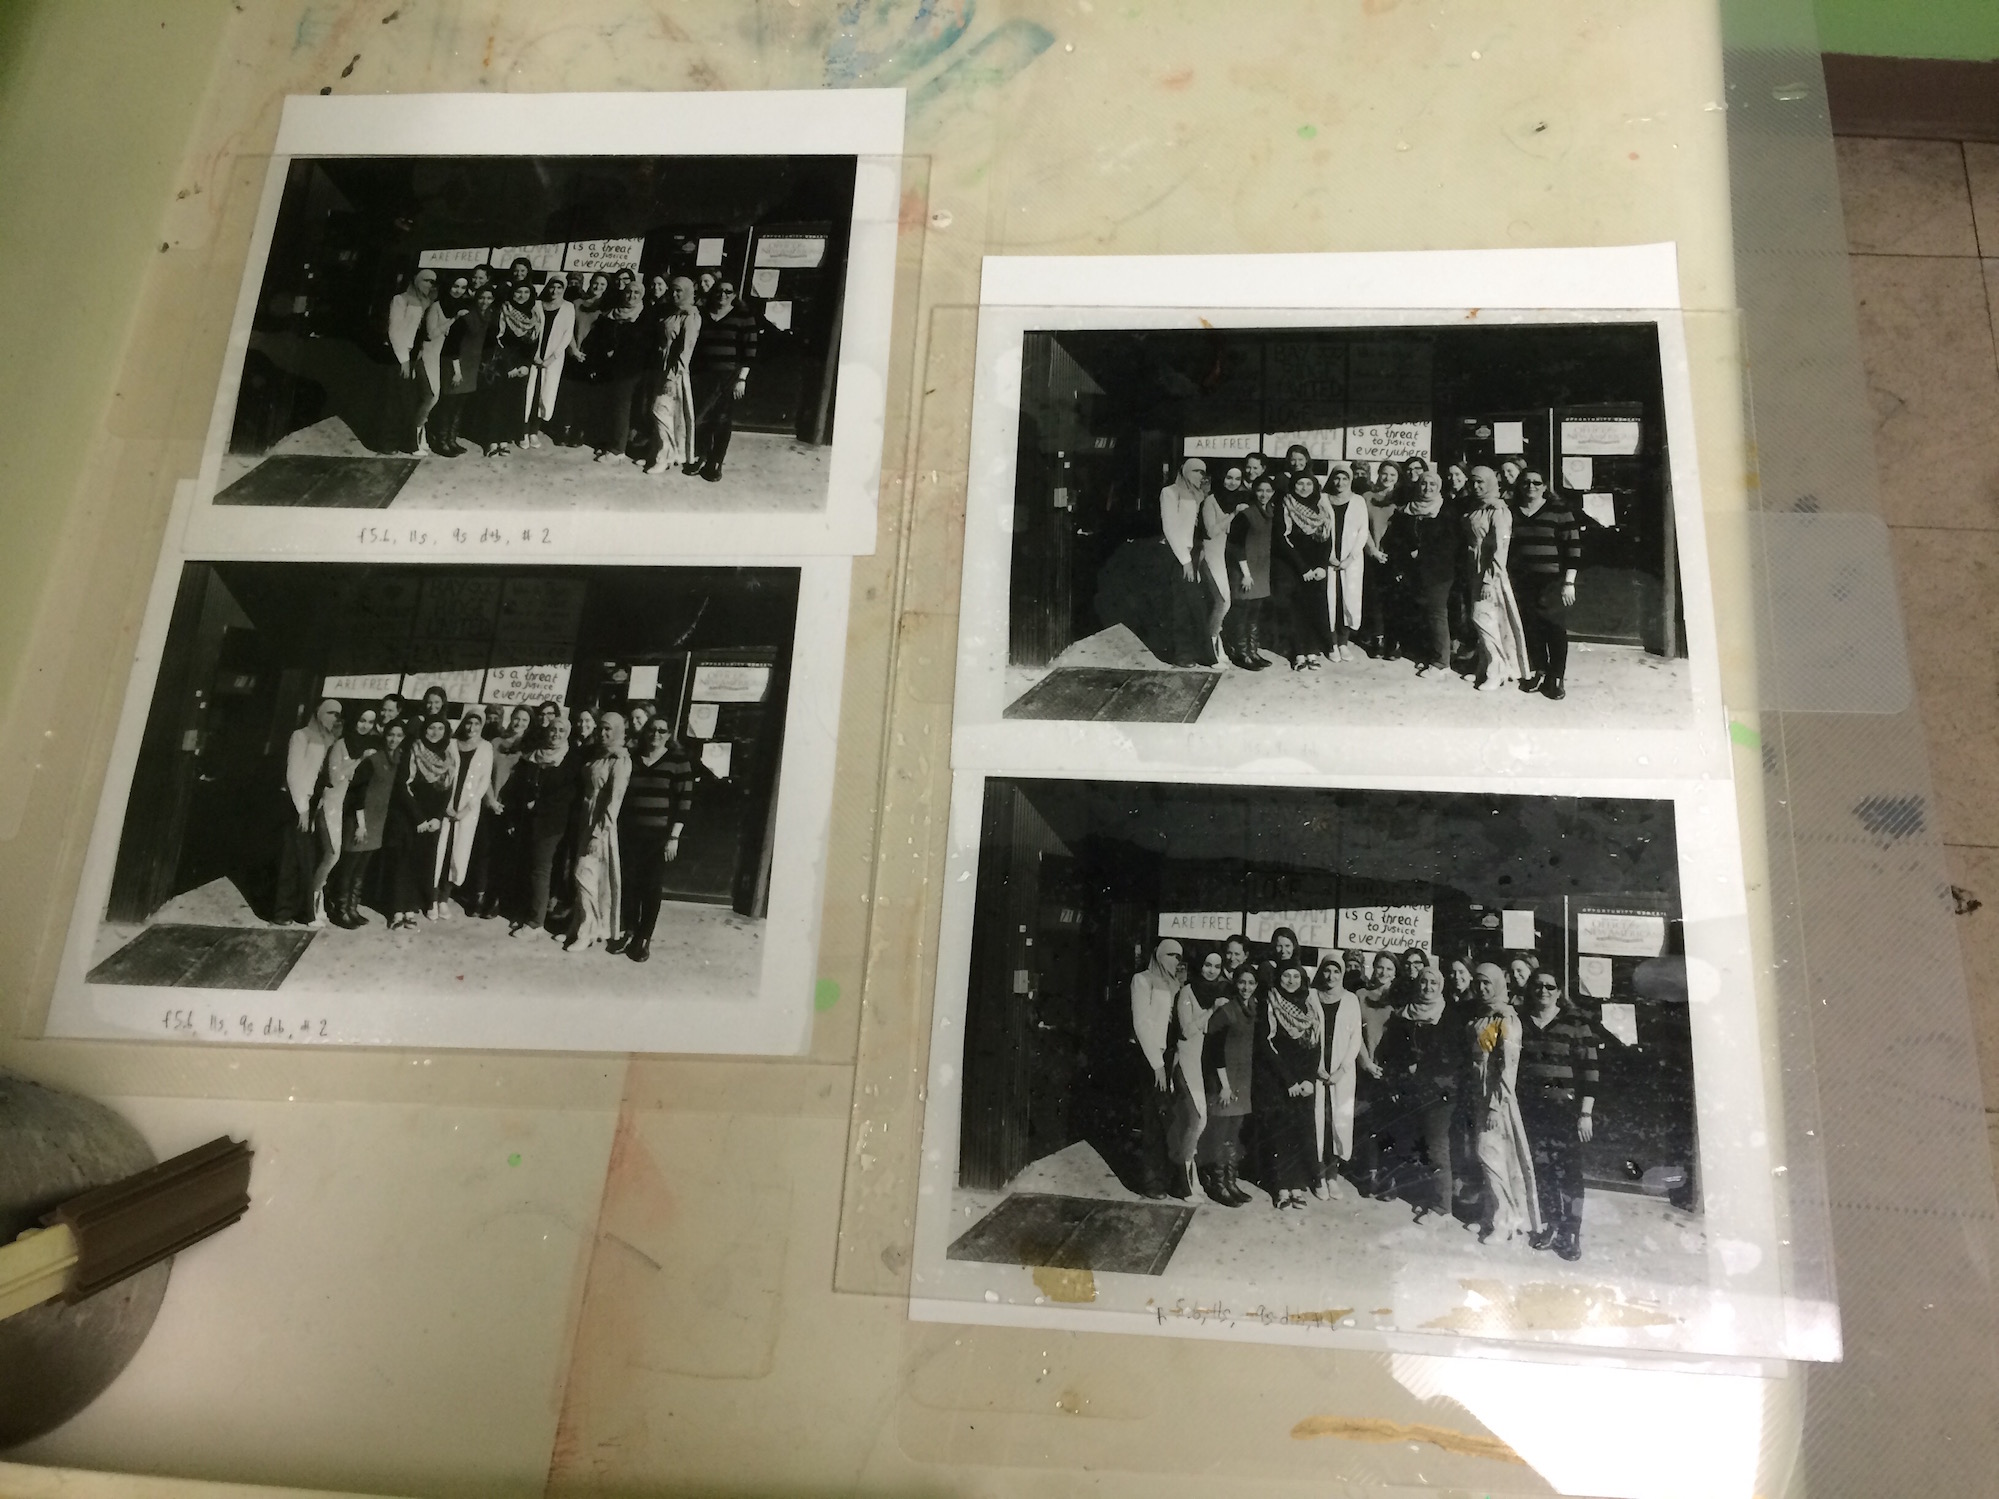 Darkroom: The four finished prints drying